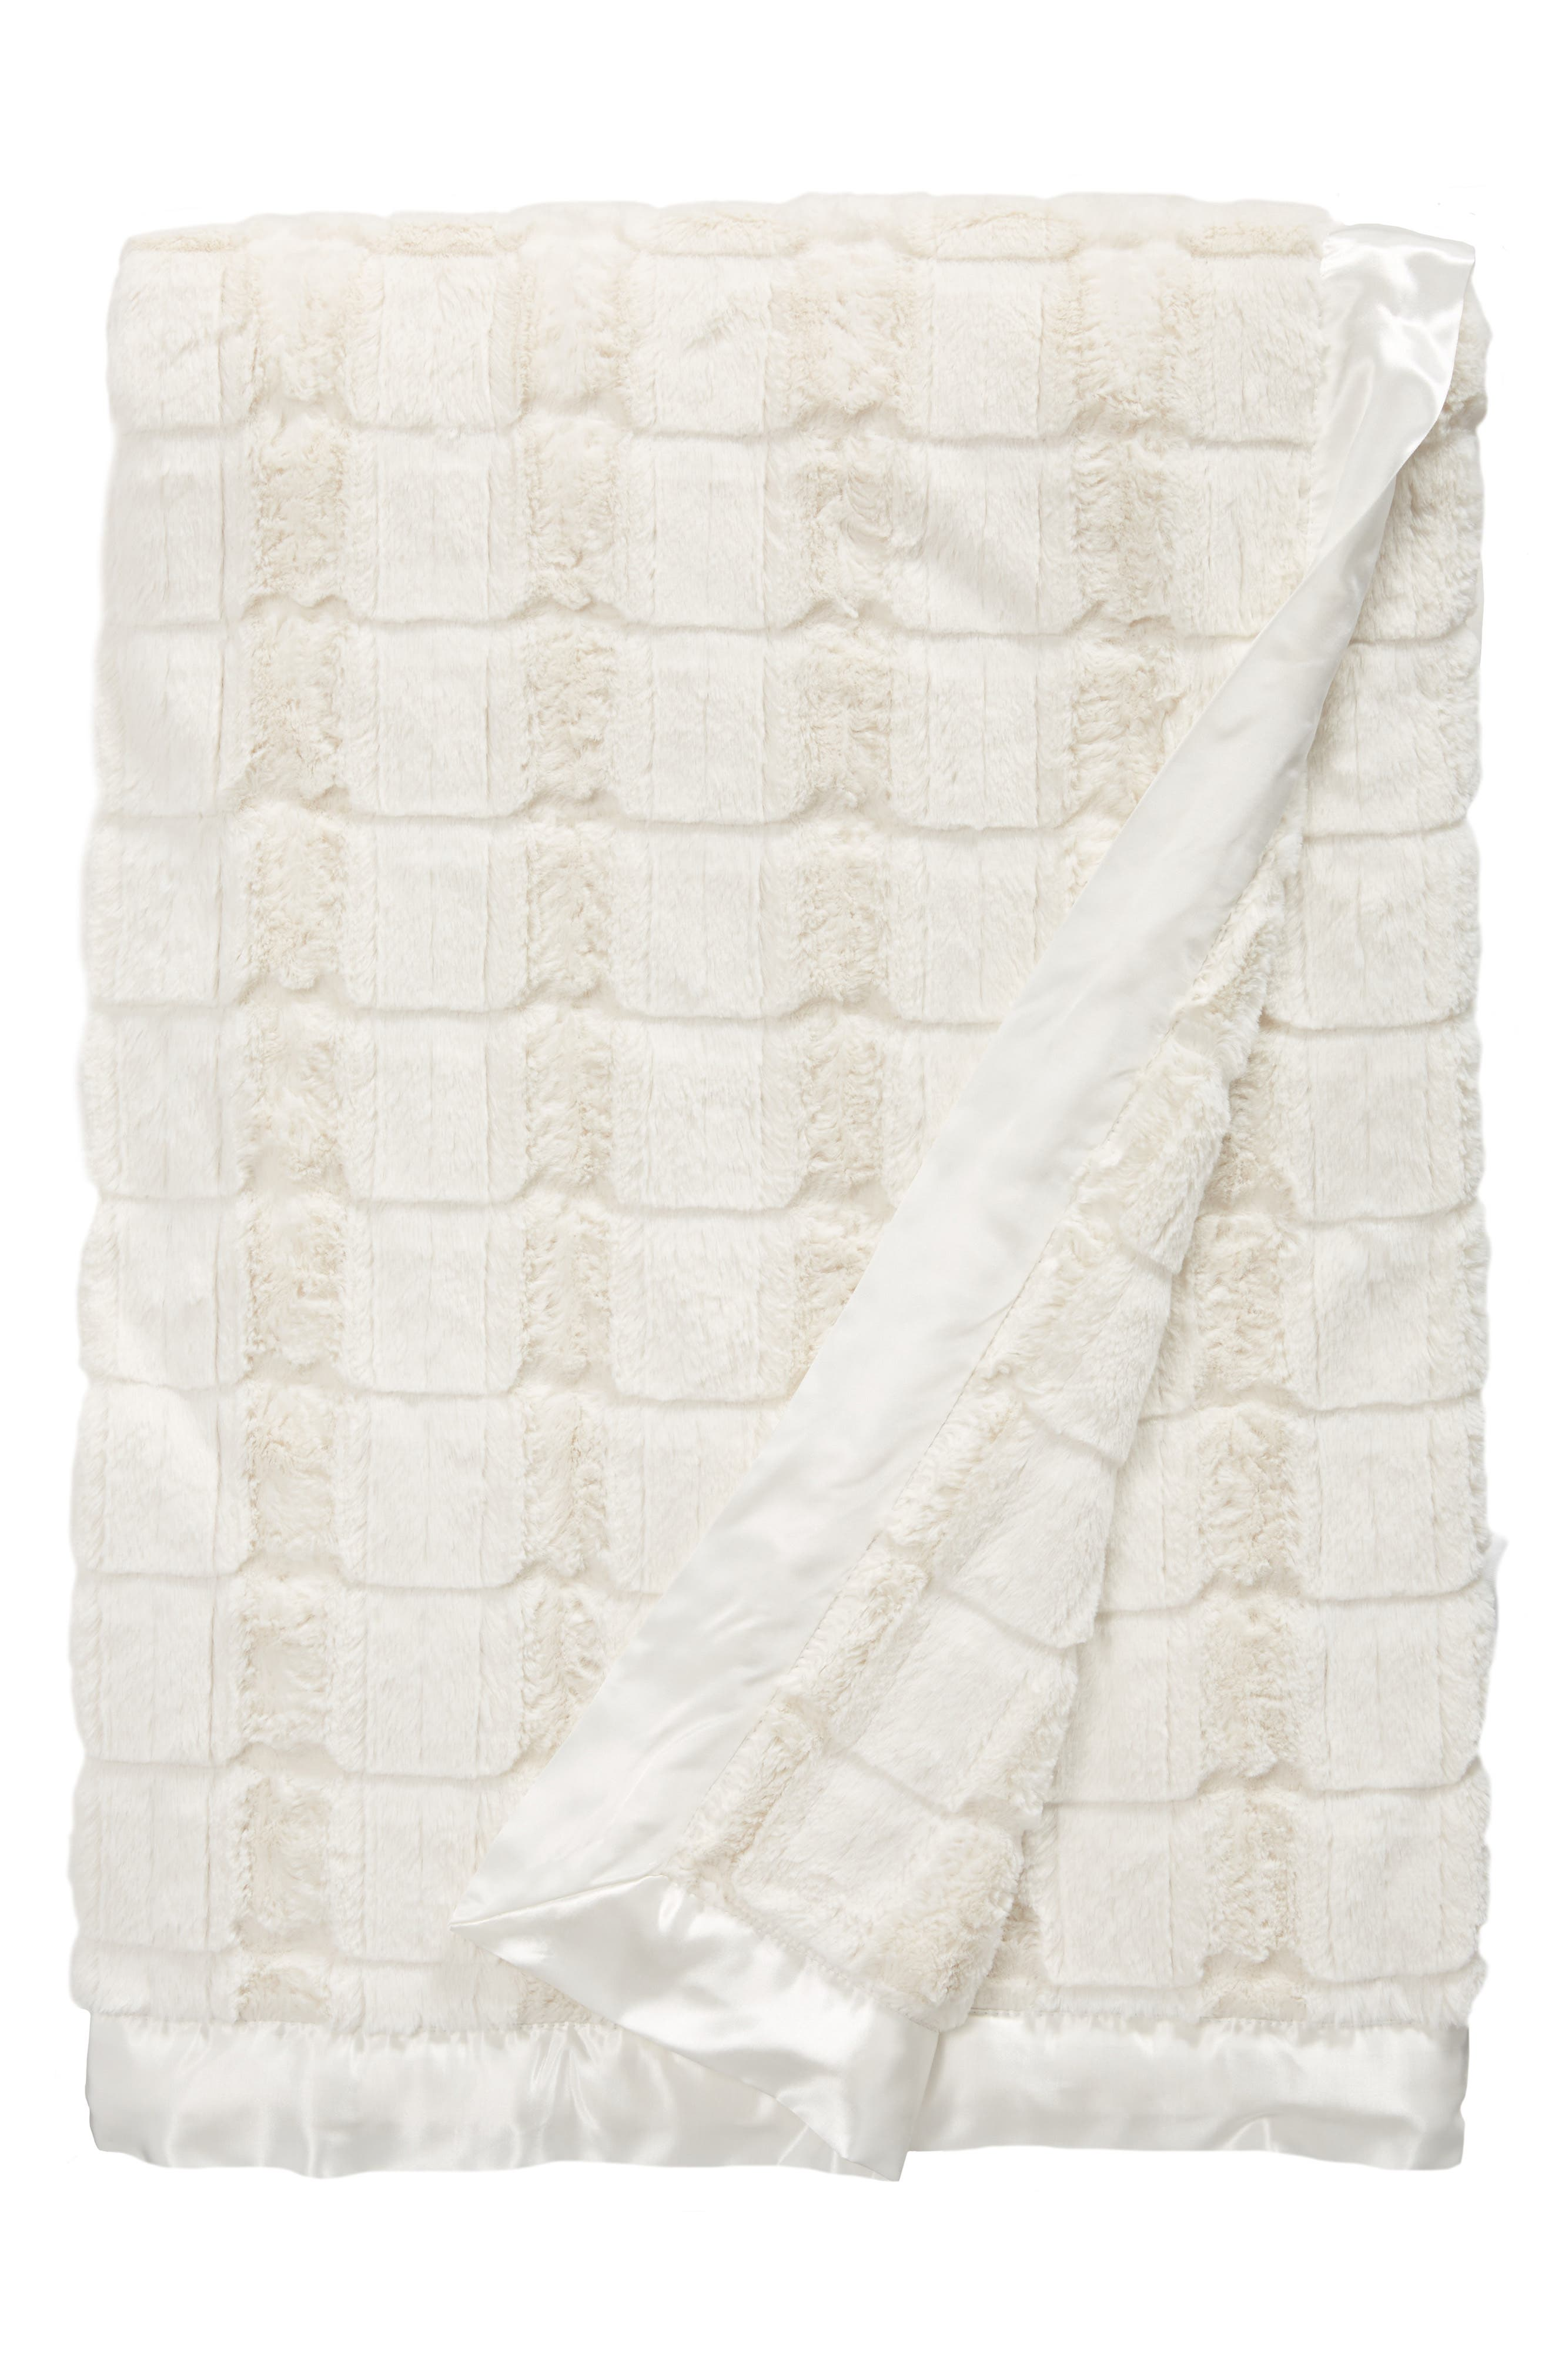 Main Image - Giraffe at Home Luxe Waterfall Throw Blanket